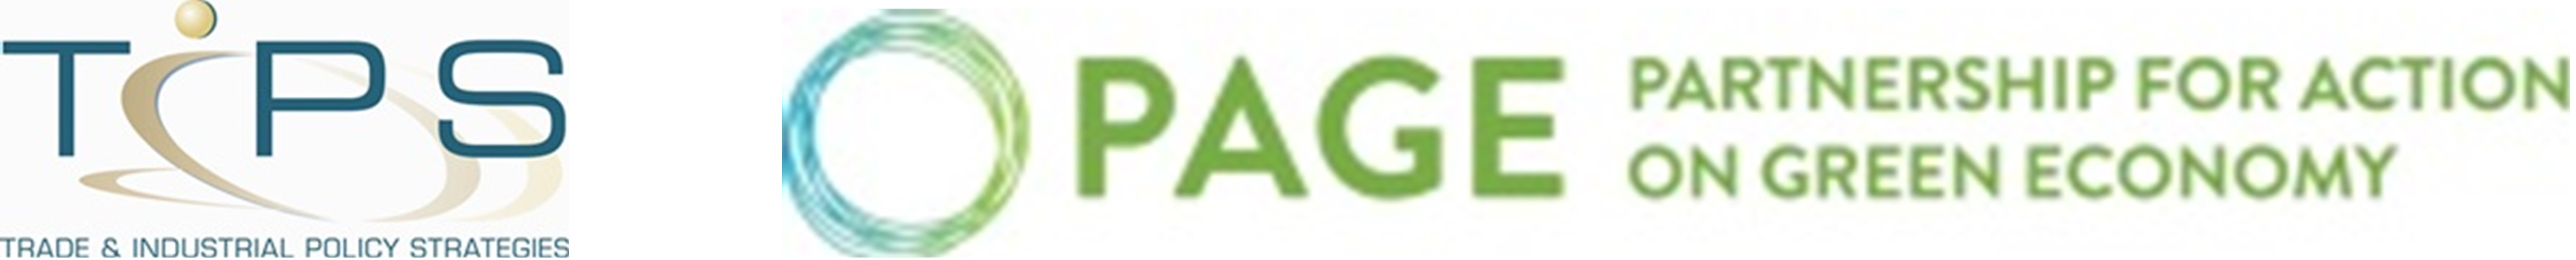 TIPS_and_PAGE_Partnership_for_Action_on_Green_Econom.jpg